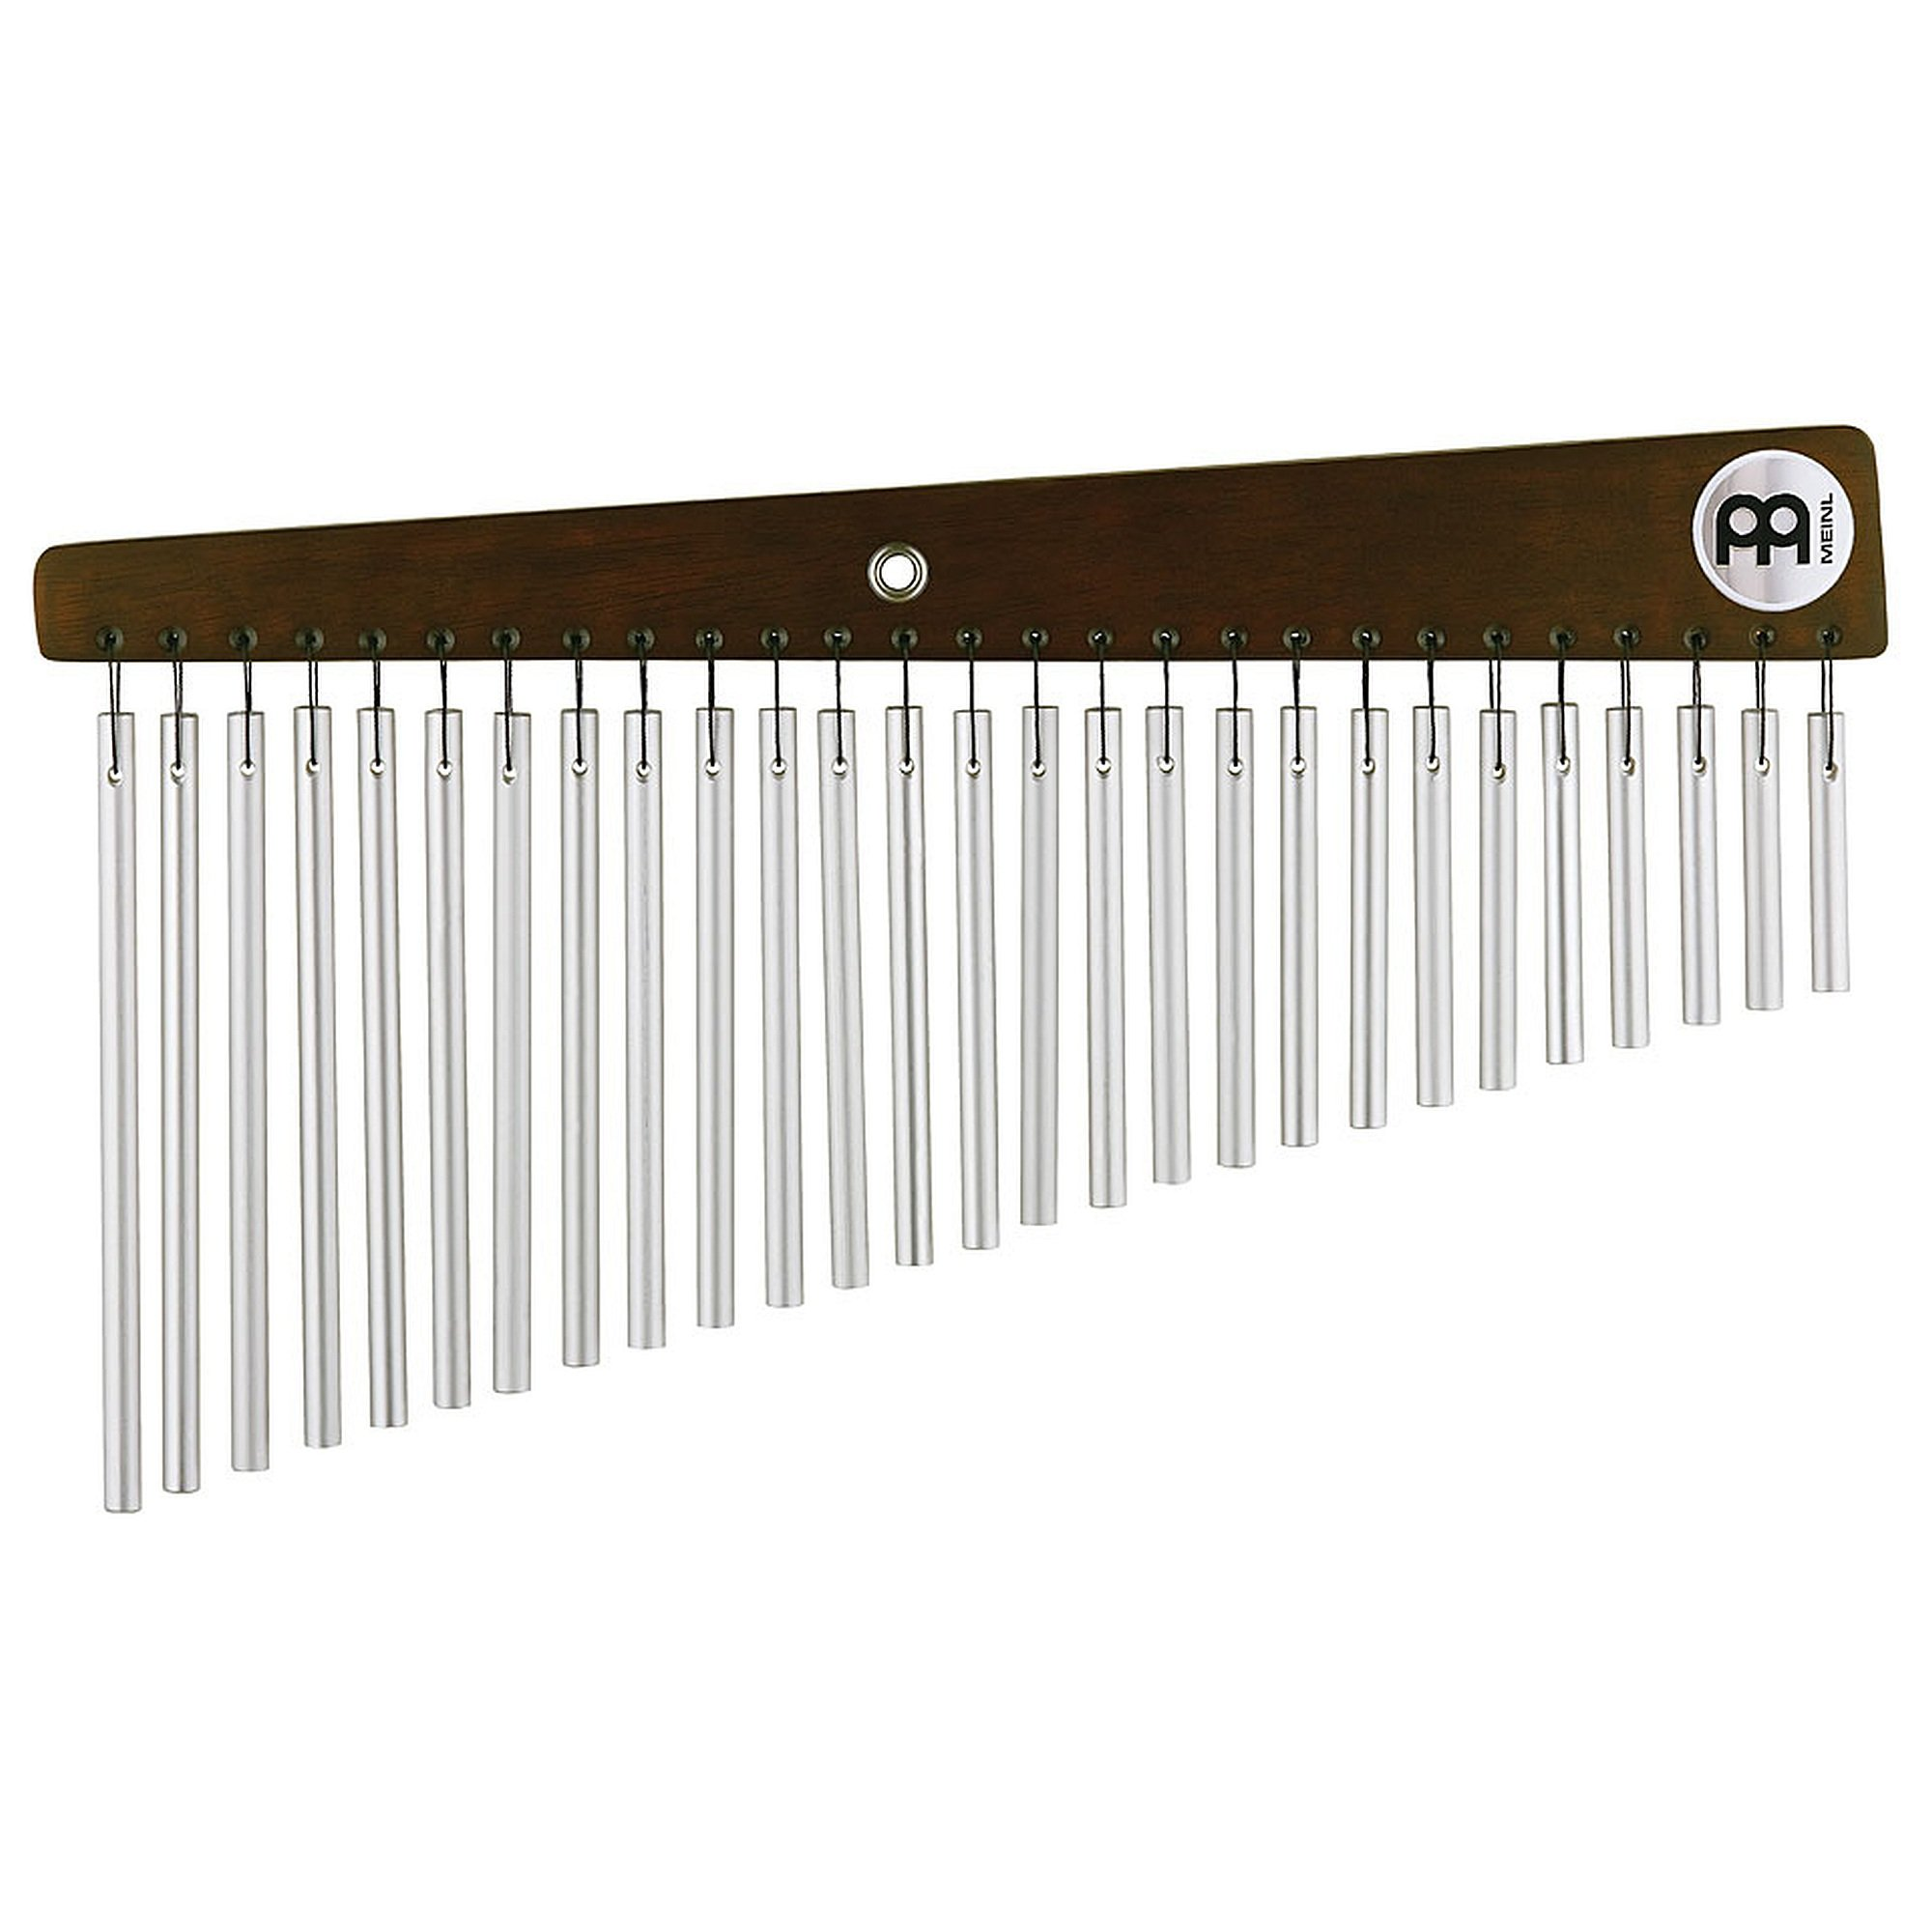 Meinl Percussion CH27VWB Silver Anodized Aluminum Alloy Vintage Single Row Chimes, 27 Bars by Meinl Percussion